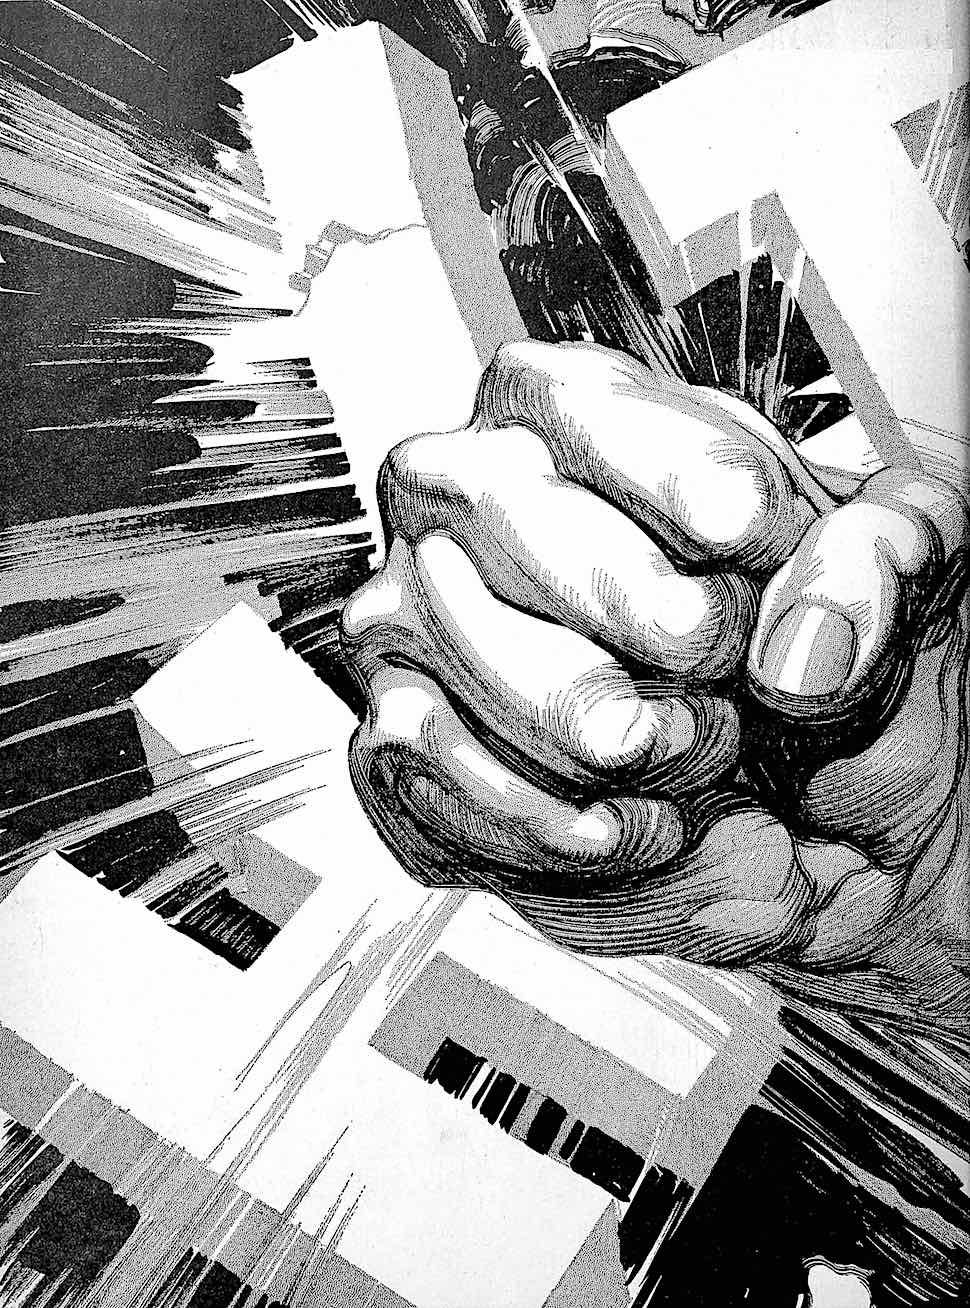 HIT, a 1932 advertising graphic of a smashing fist